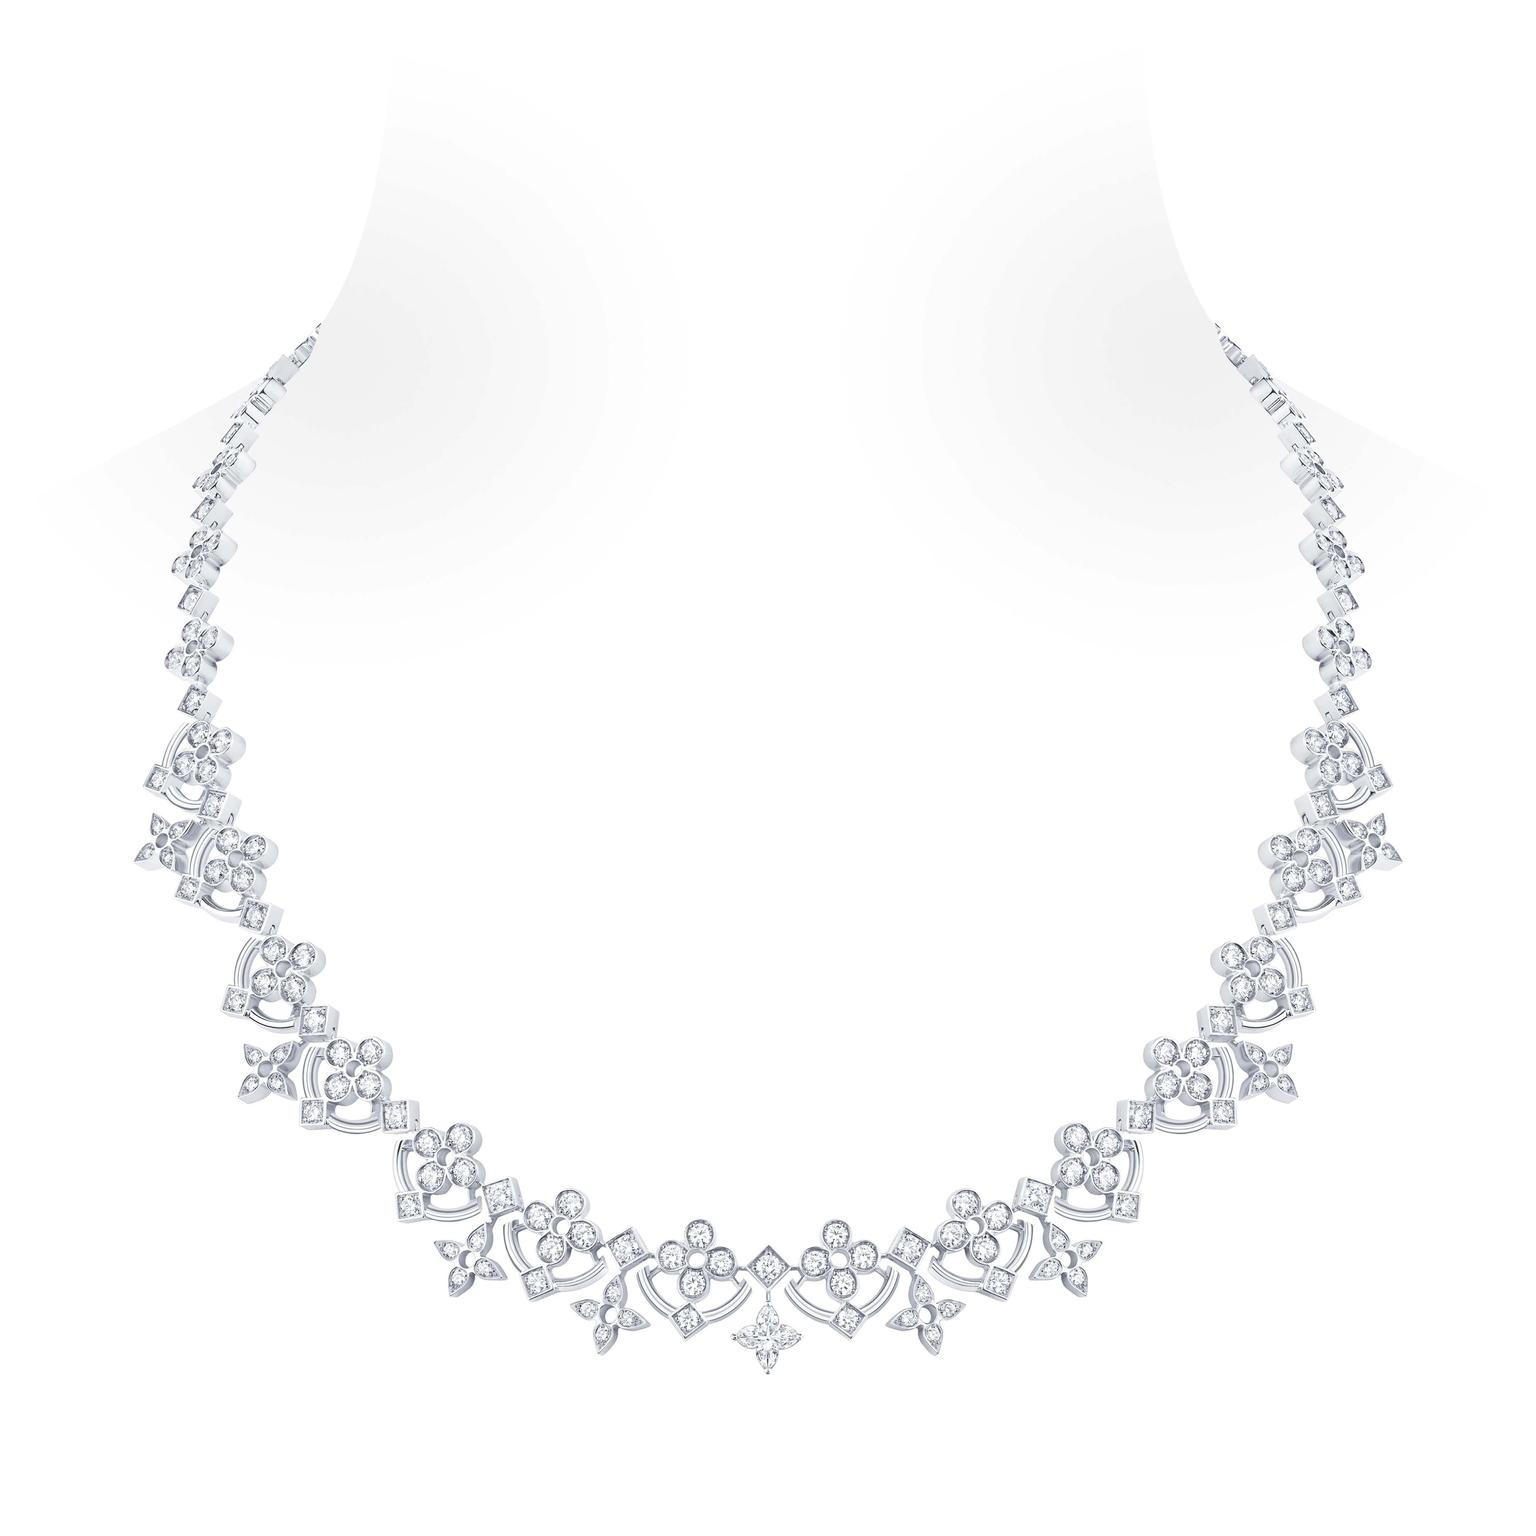 The most dramatic piece in Louis Vuitton's new Dentelle de Monogram jewellery collection is the shorter necklace in a classical style that, in ever increasing sizes, weaves together garlands of diamond flowers and stars that lead to a 0.50 carat diamond,